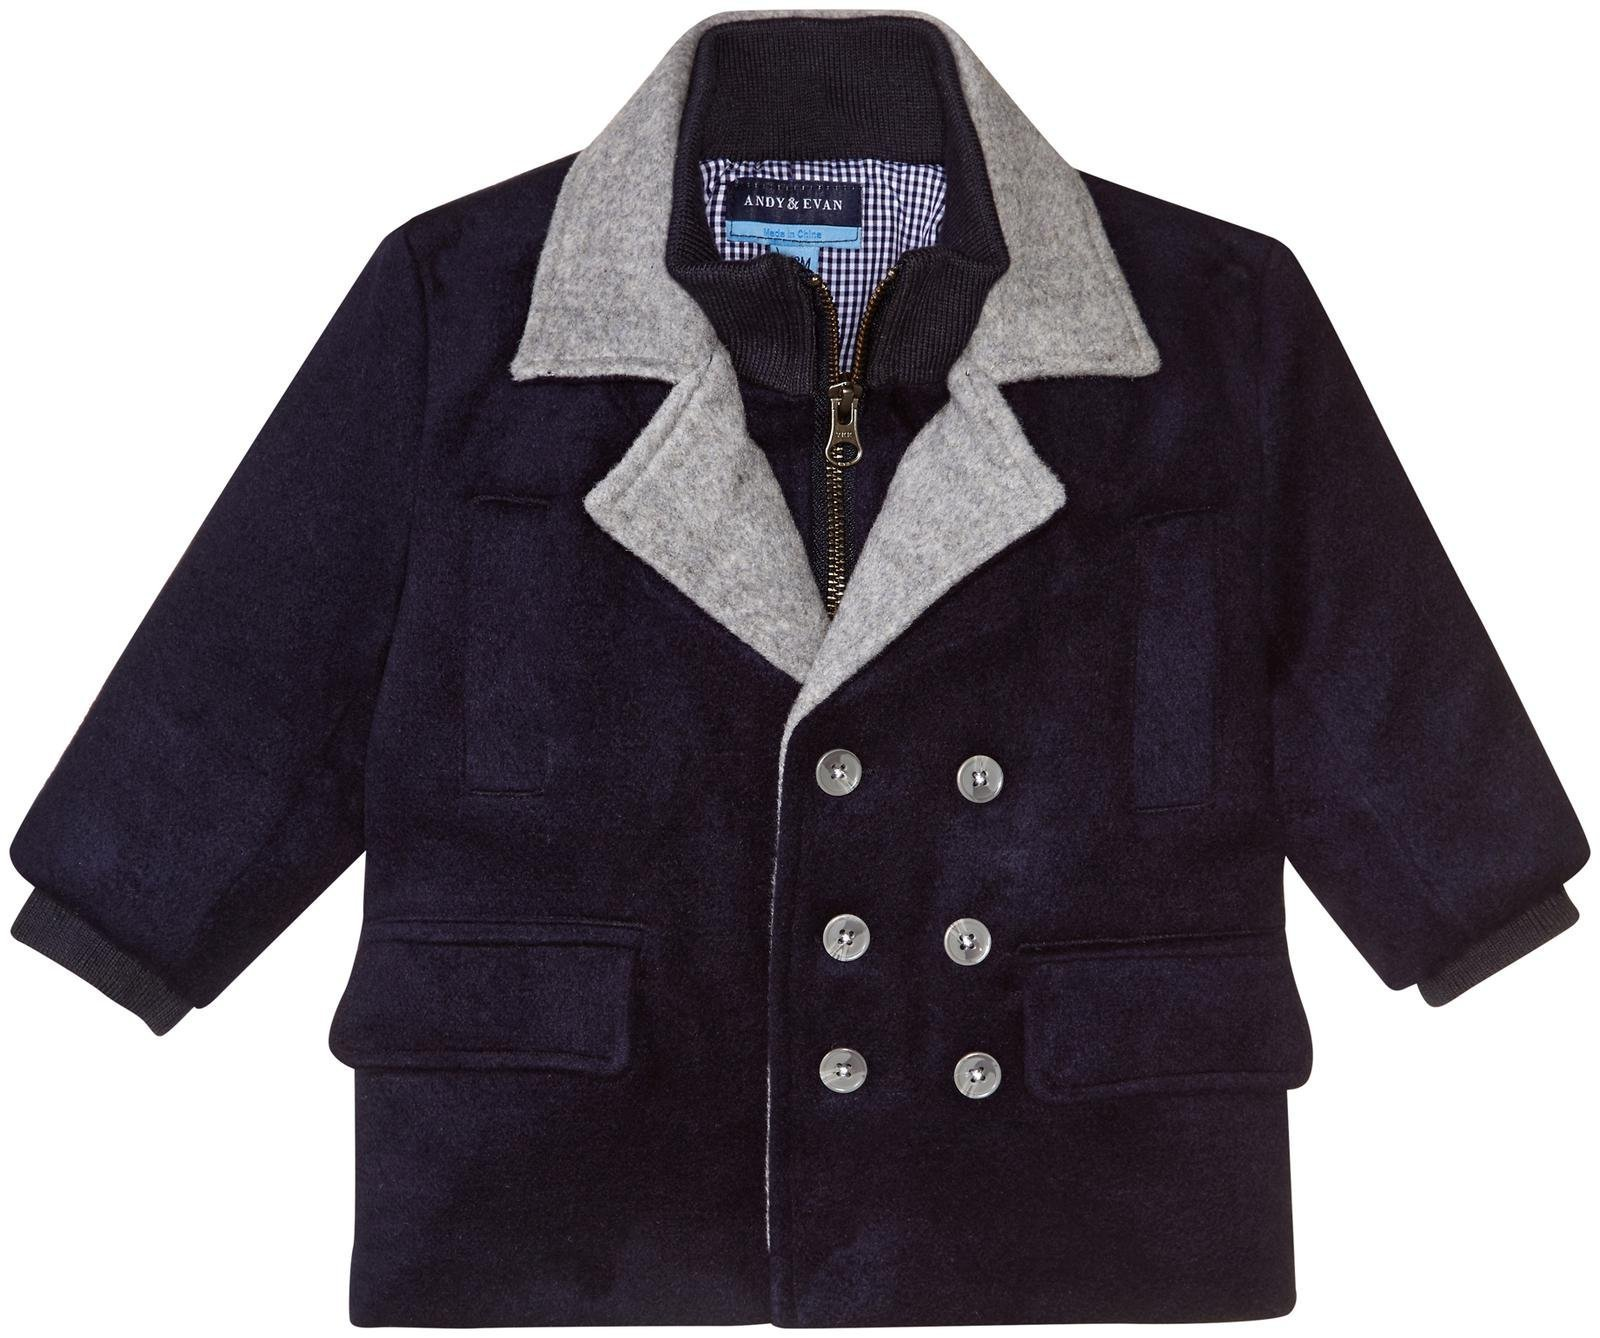 Andy & Evan Boys' Peacoat-Toddler, Navy, 2T